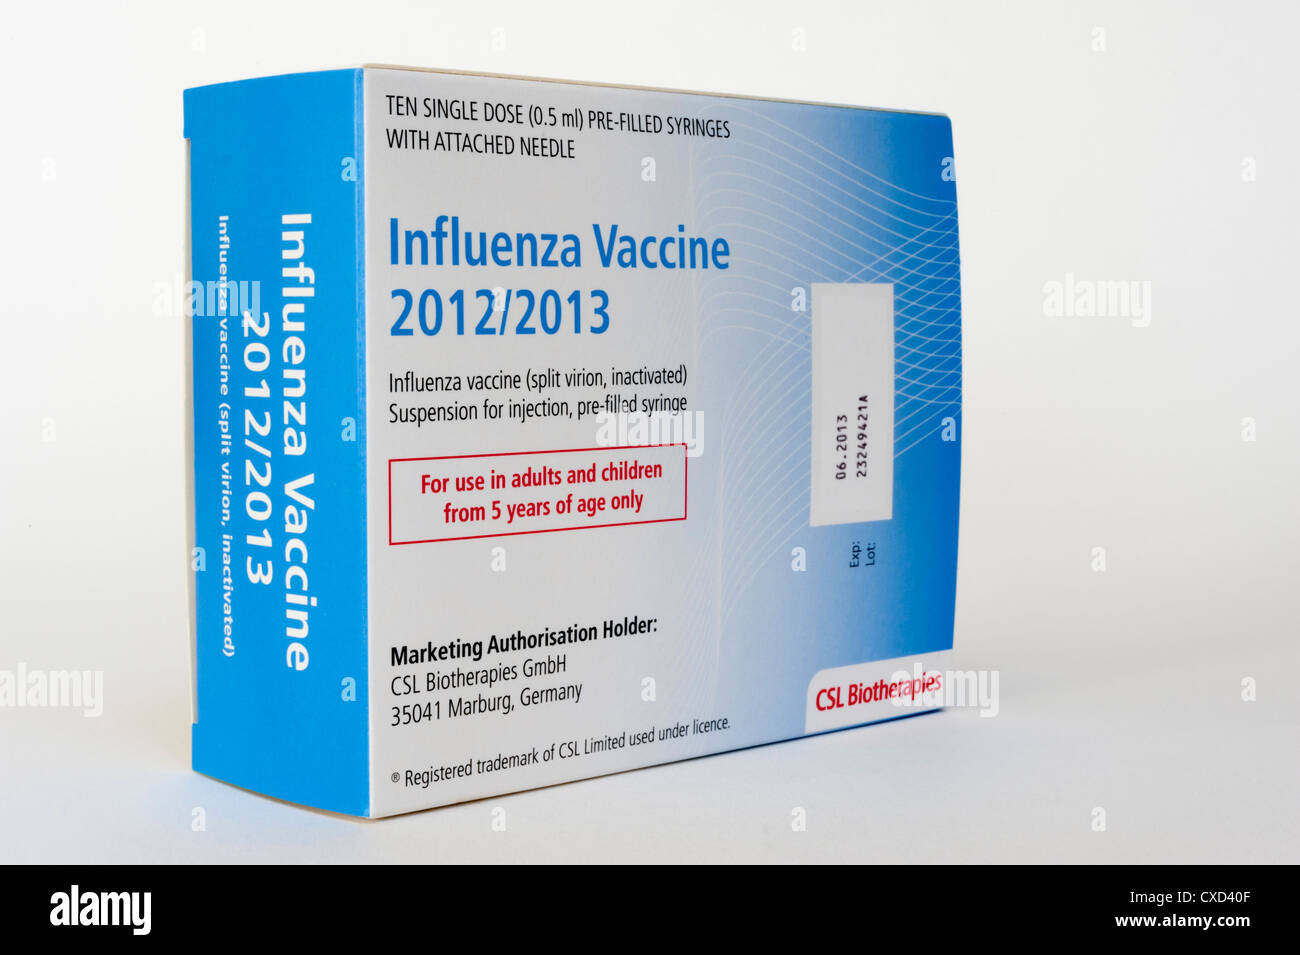 Influenza vaccine for the 2012 -2013 season, generic made by CSL Biotherapies - Stock Image